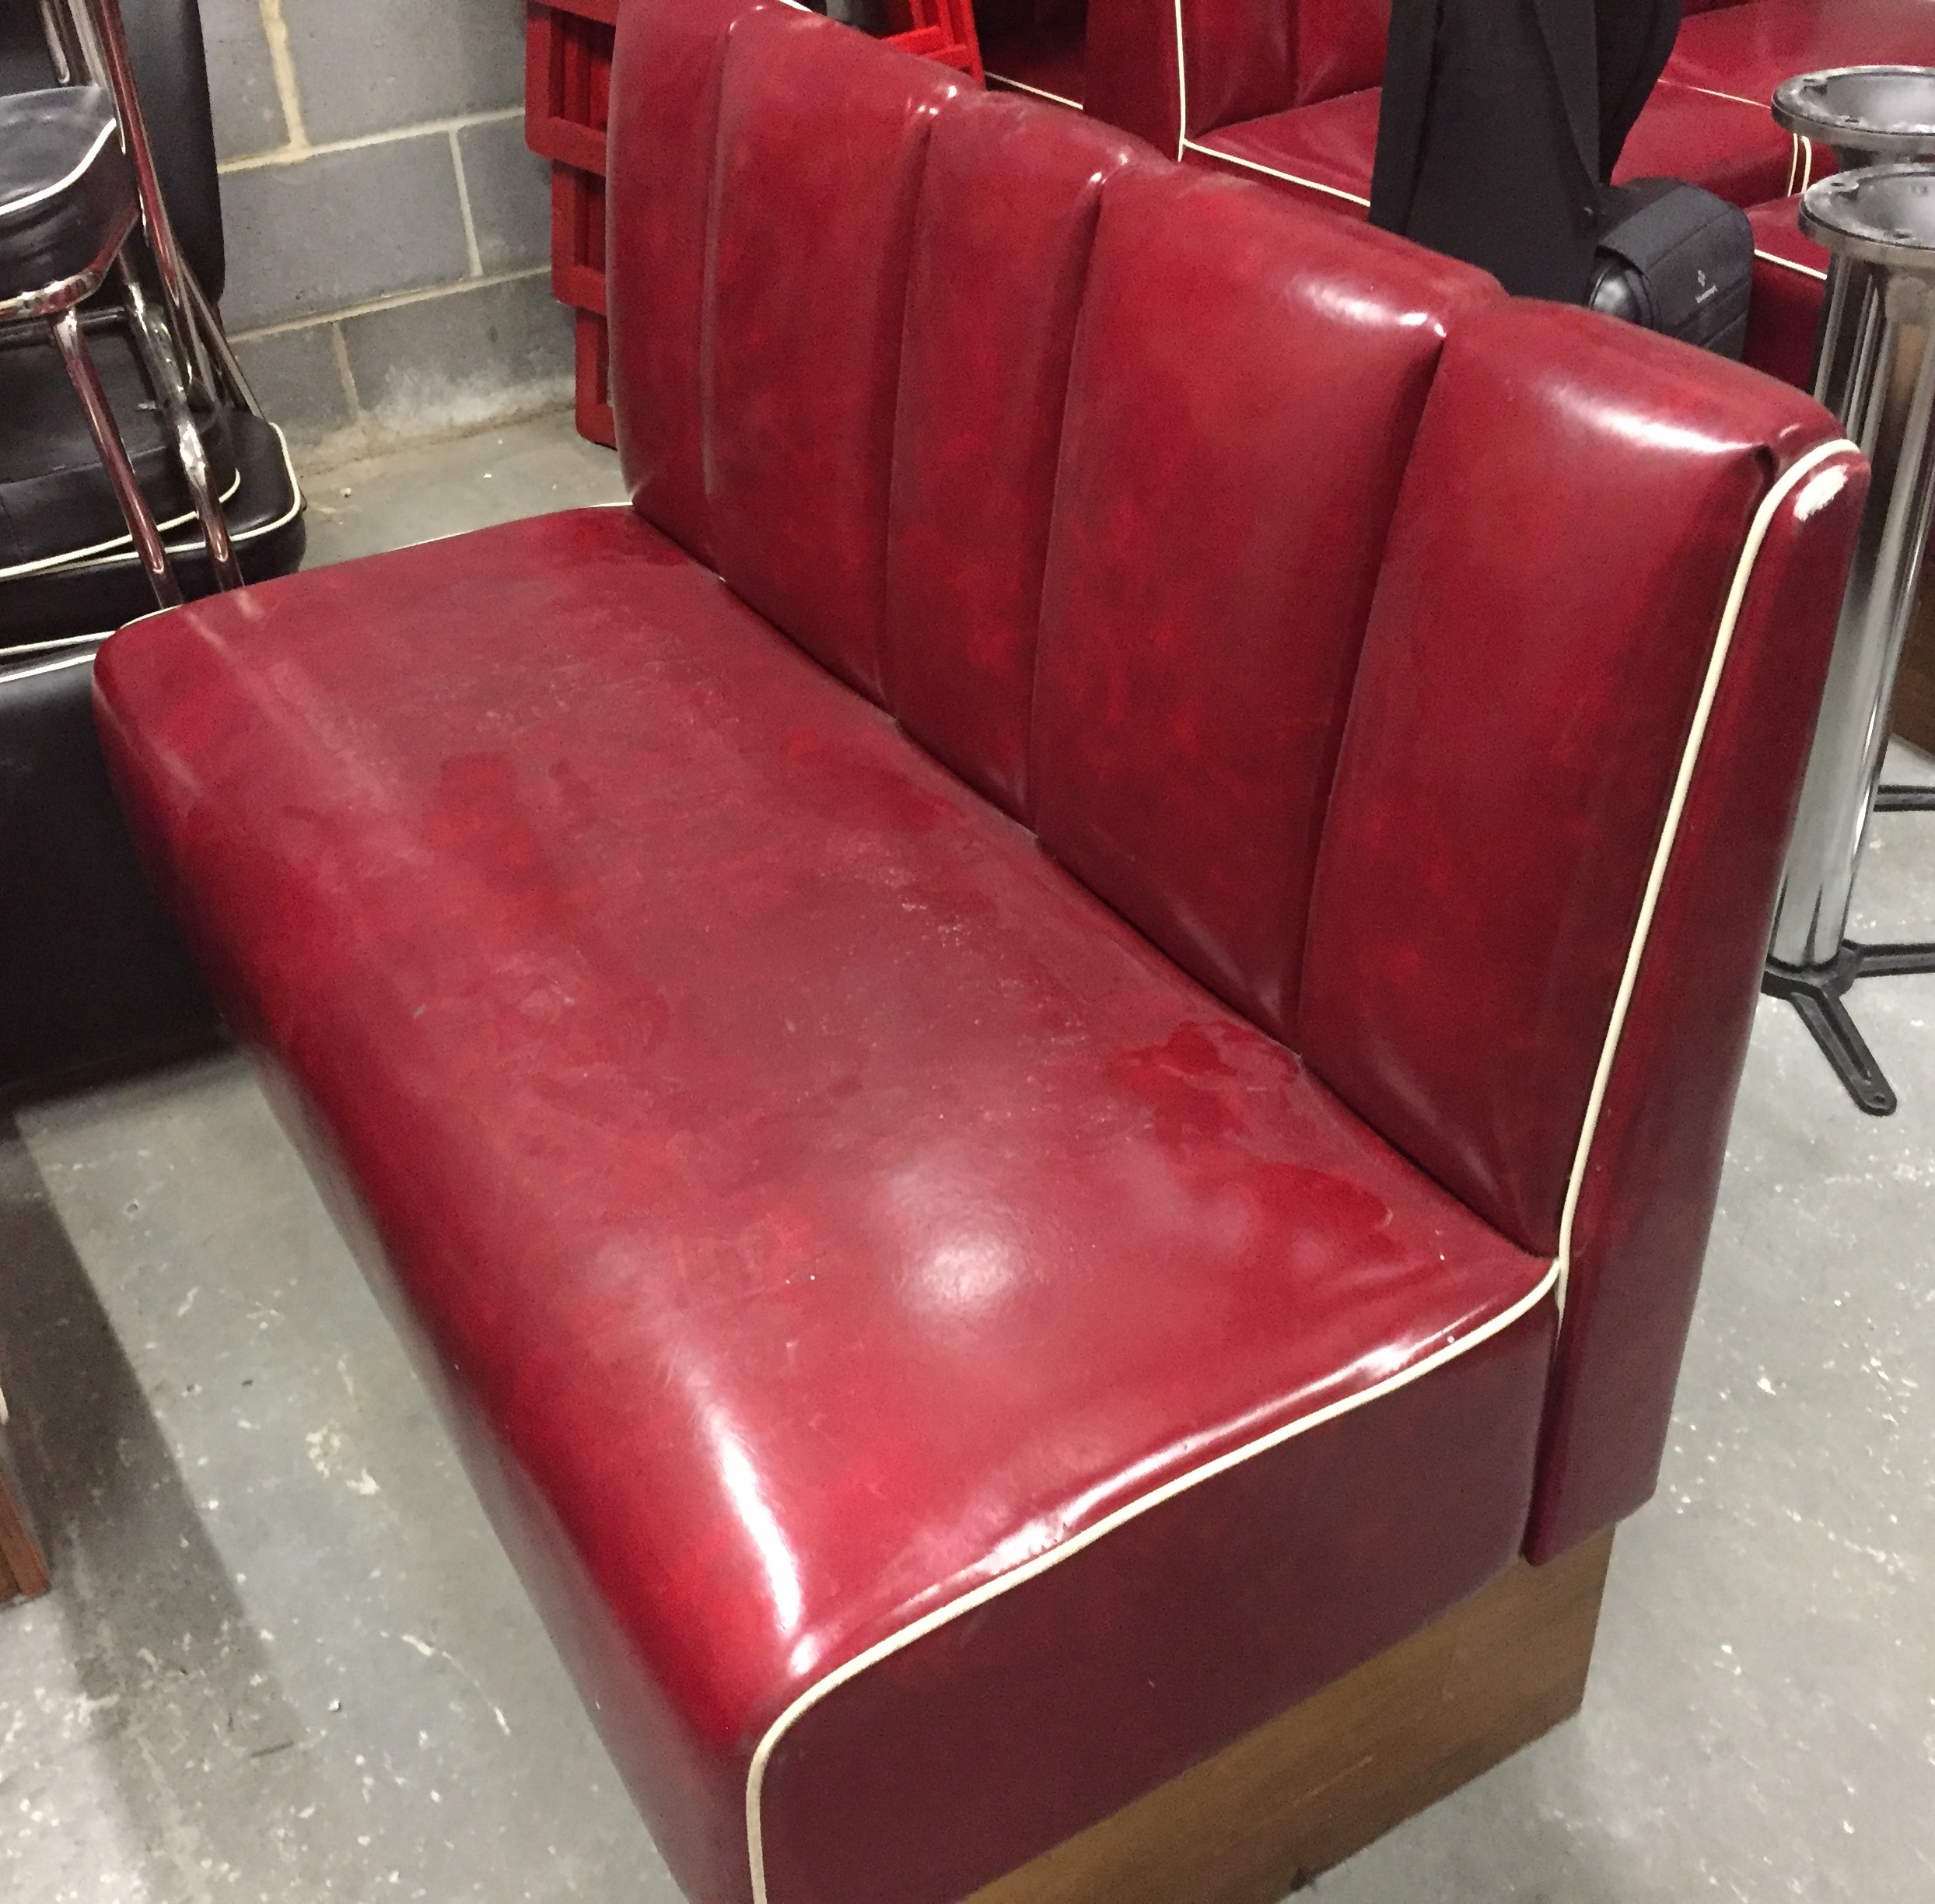 1 X Retro 1950 39 S Style American Diner Restaurant Seating Bench Red Leather Seating With Cream E